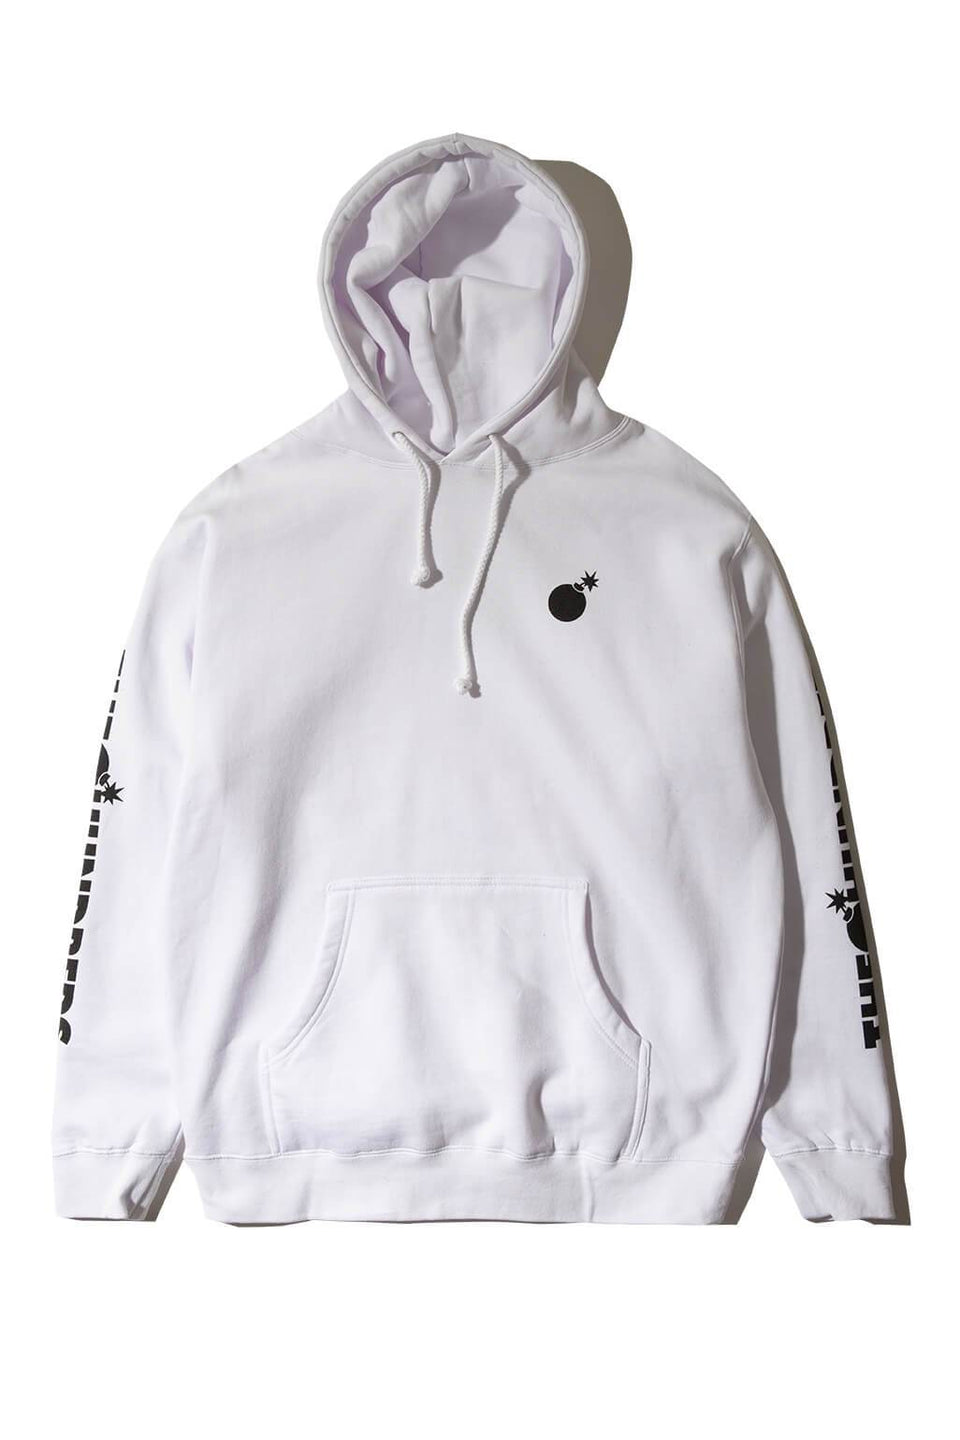 Forever Solid Bomb Crest Pullover Hoodie White Front